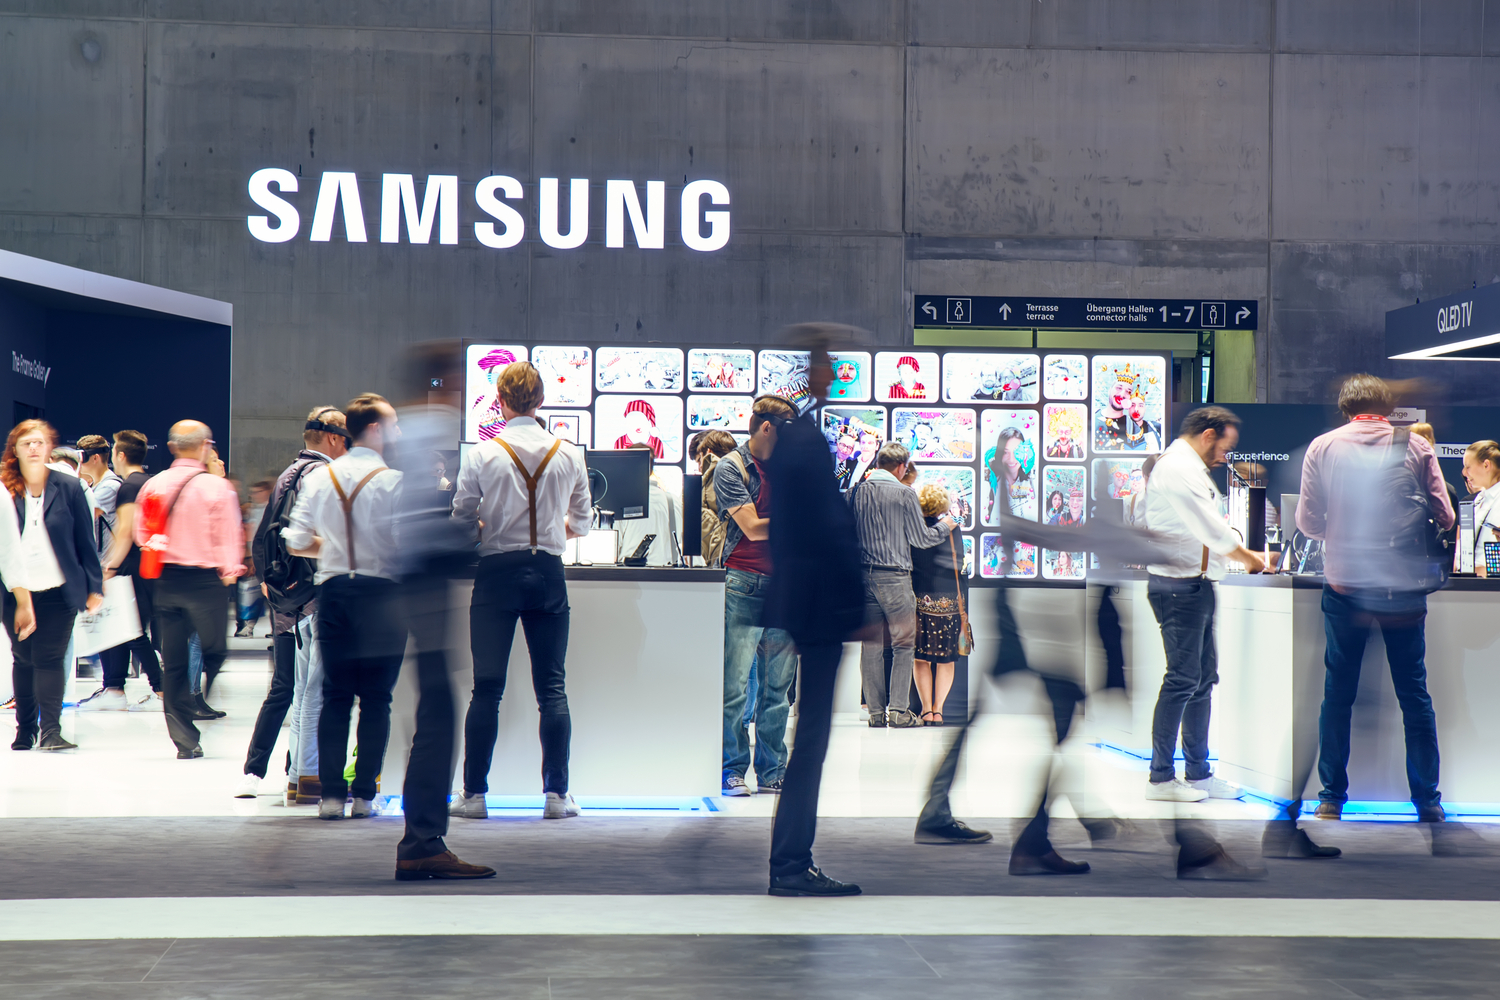 Samsung Confirms Galaxy S10 Will Include Private Crypto Key Storage